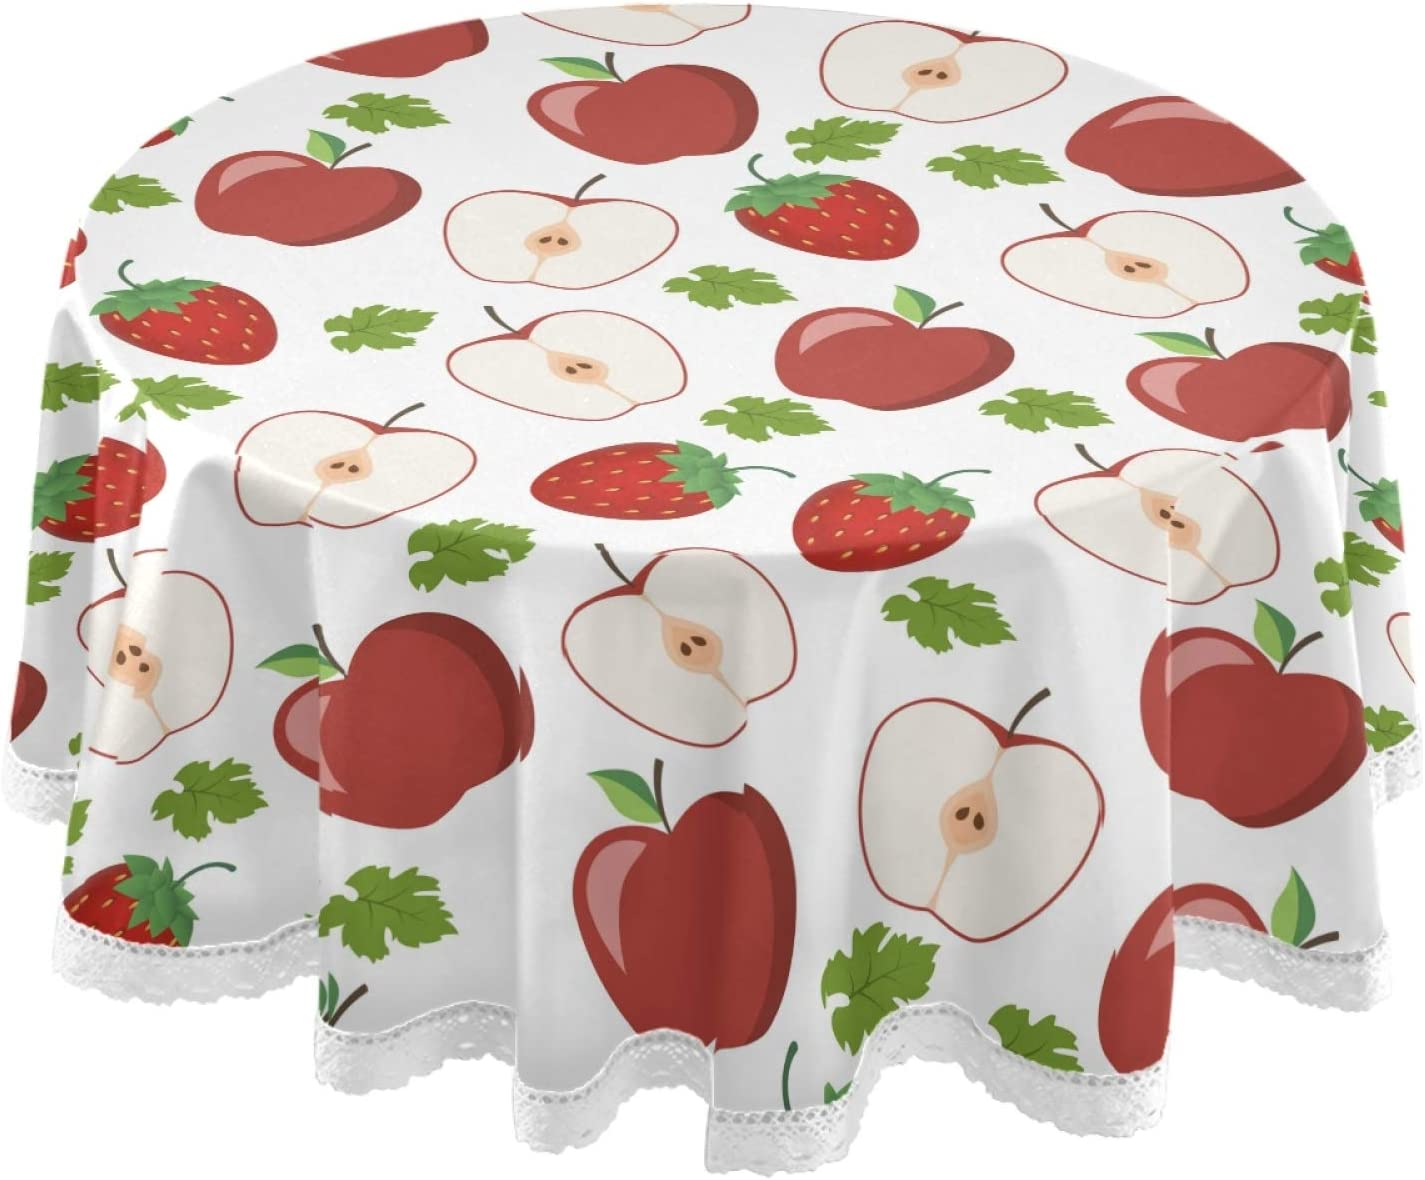 Dallonan Table Decoration for Party Fruits Apple Round Table Cloth, Green Leaf Strawberry Polyester White Lace Tablecloth Round Table 60 Inch for Dinner Table Decor